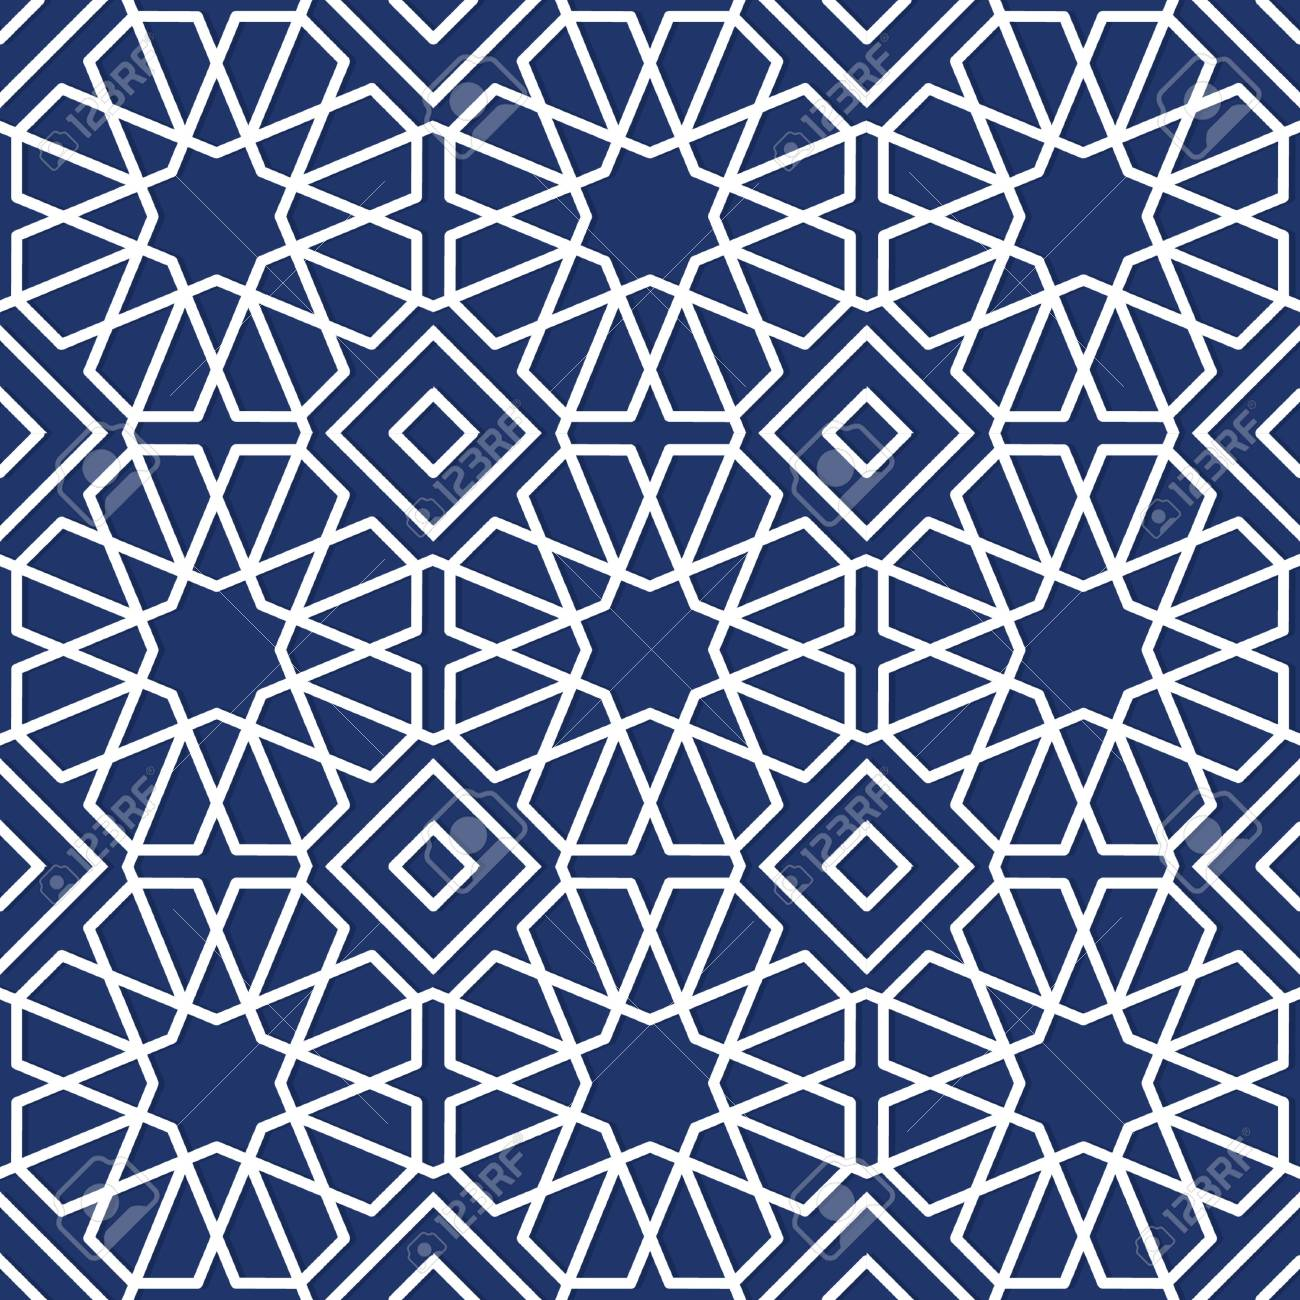 islamic geometric pattern design